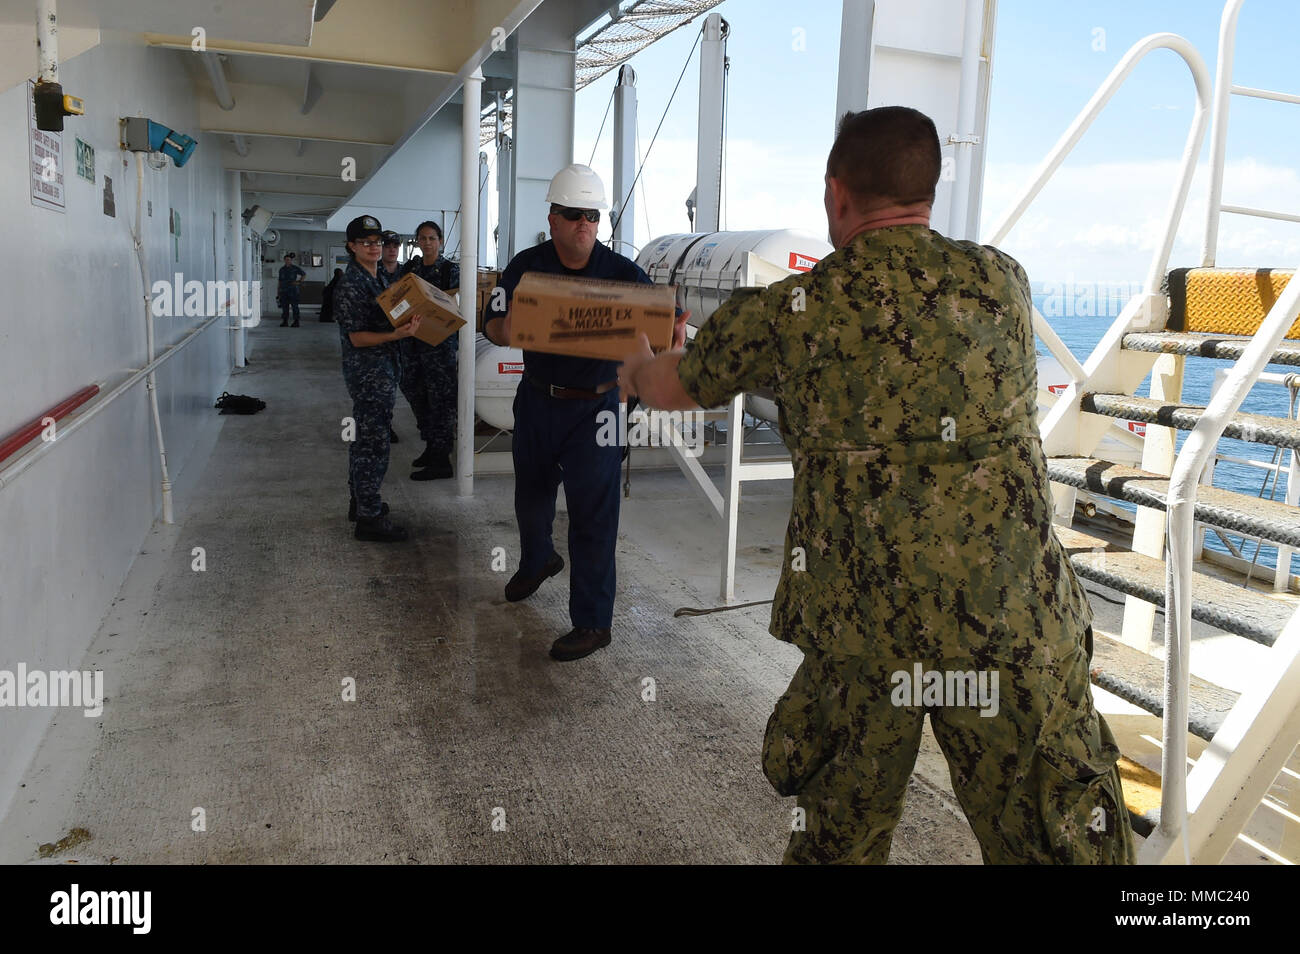 Two Tenders Stock Photos Images Alamy 1009 Military Wiring Harness Diagram 171009 N Pg340 258 Caribbean Sea Oct 9 2017